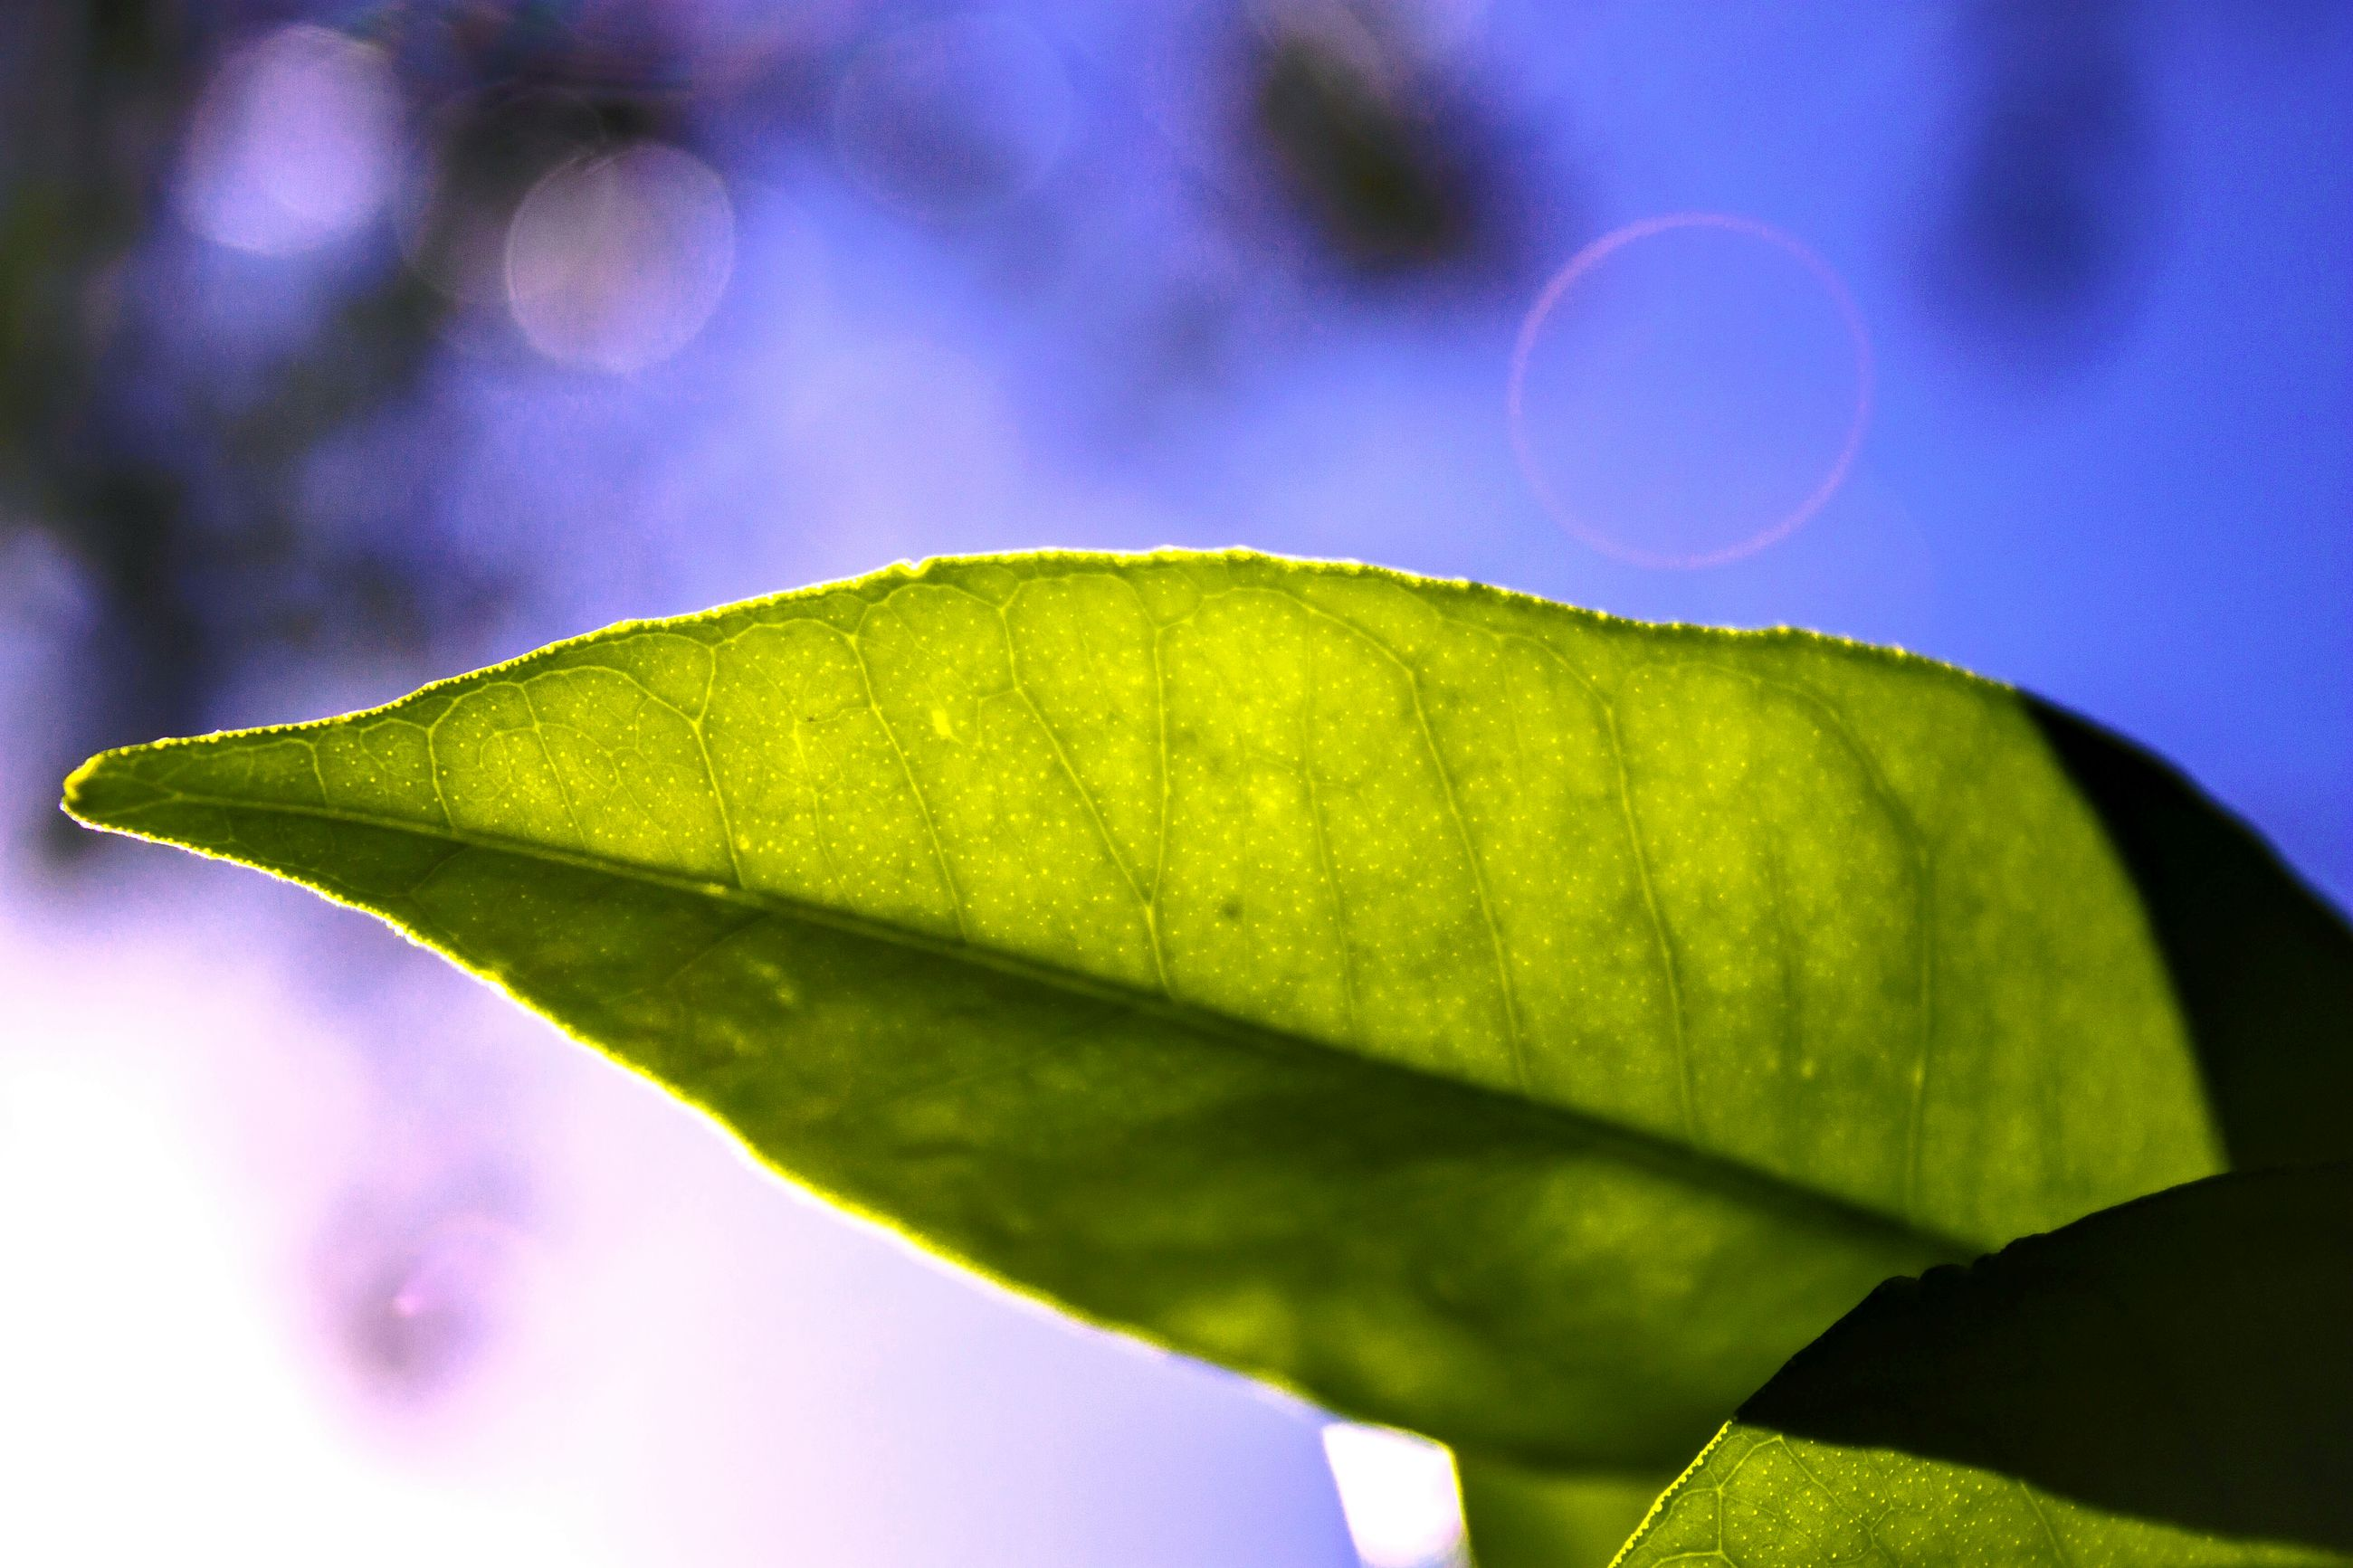 close-up, leaf, leaf vein, focus on foreground, fragility, selective focus, green color, nature, plant, extreme close-up, growth, beauty in nature, day, freshness, outdoors, green, tranquility, no people